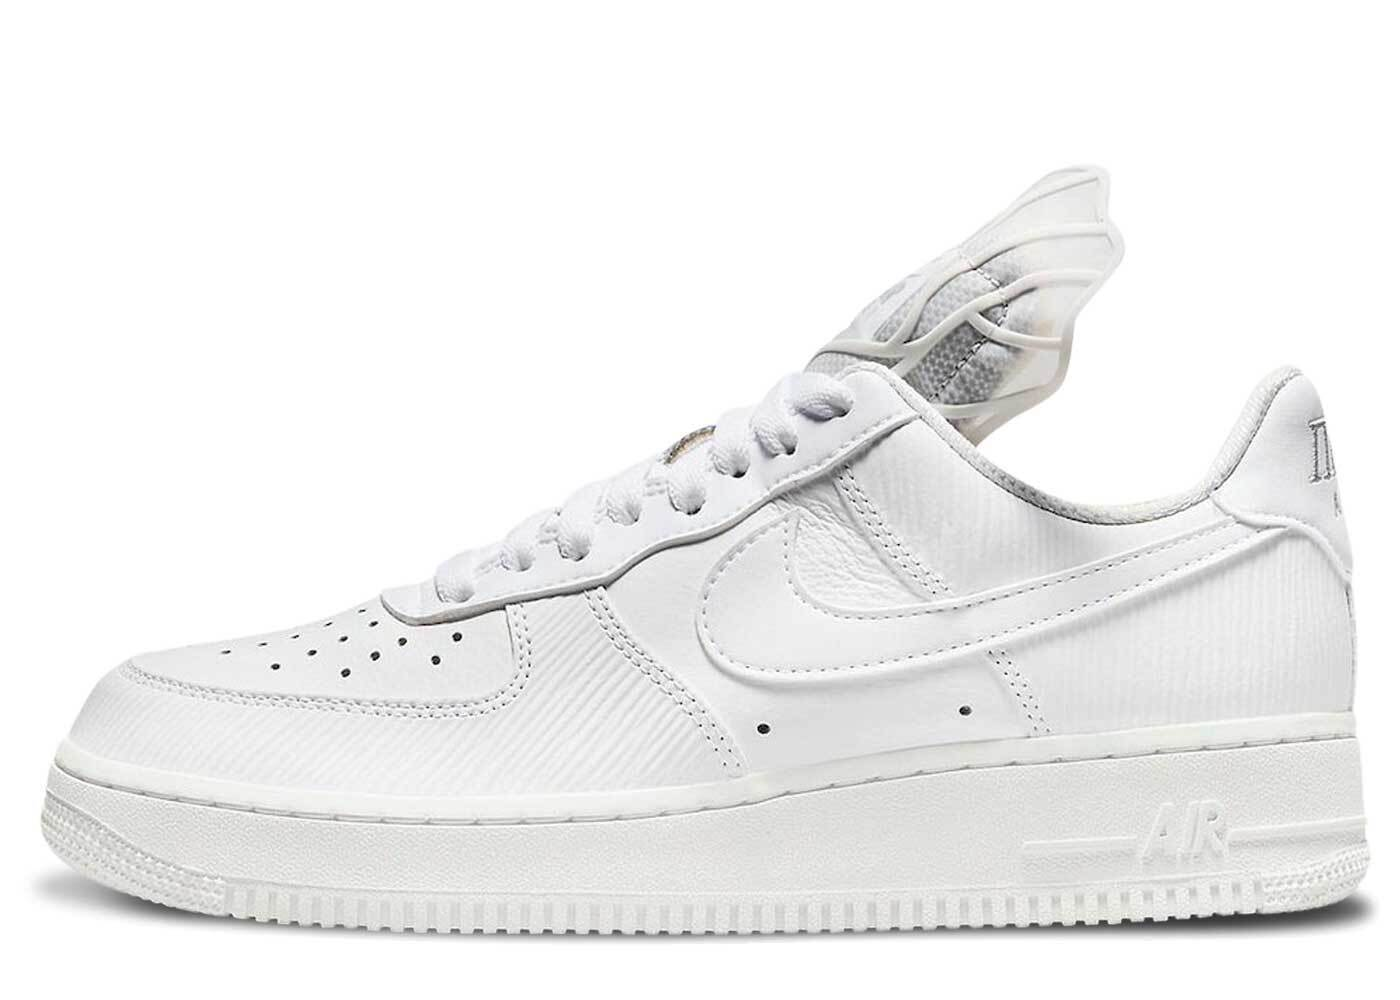 Nike Air Force 1 Low Goddess of Victoryの写真